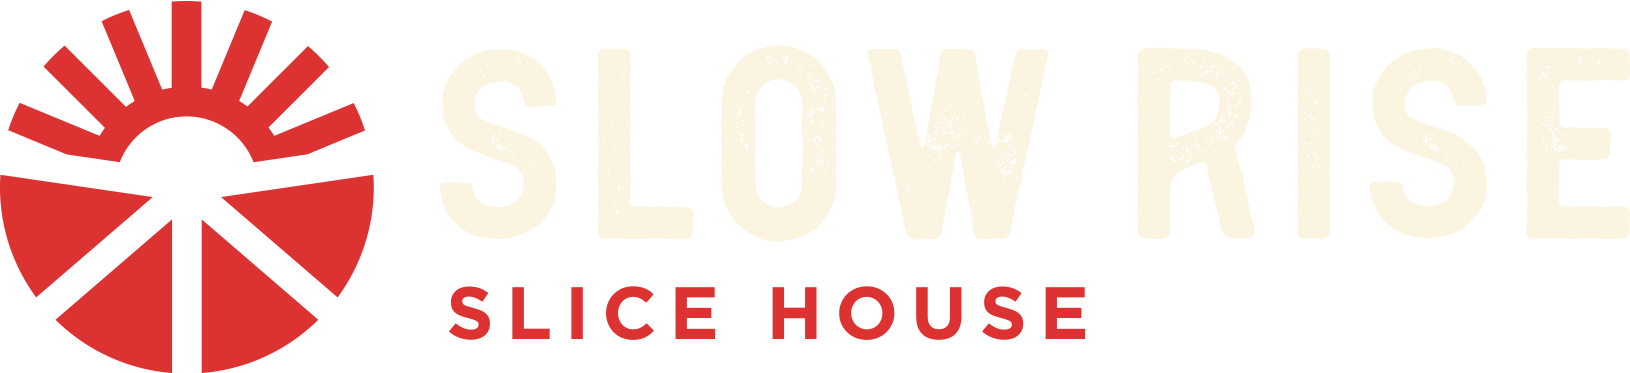 Slow Rise Slice House